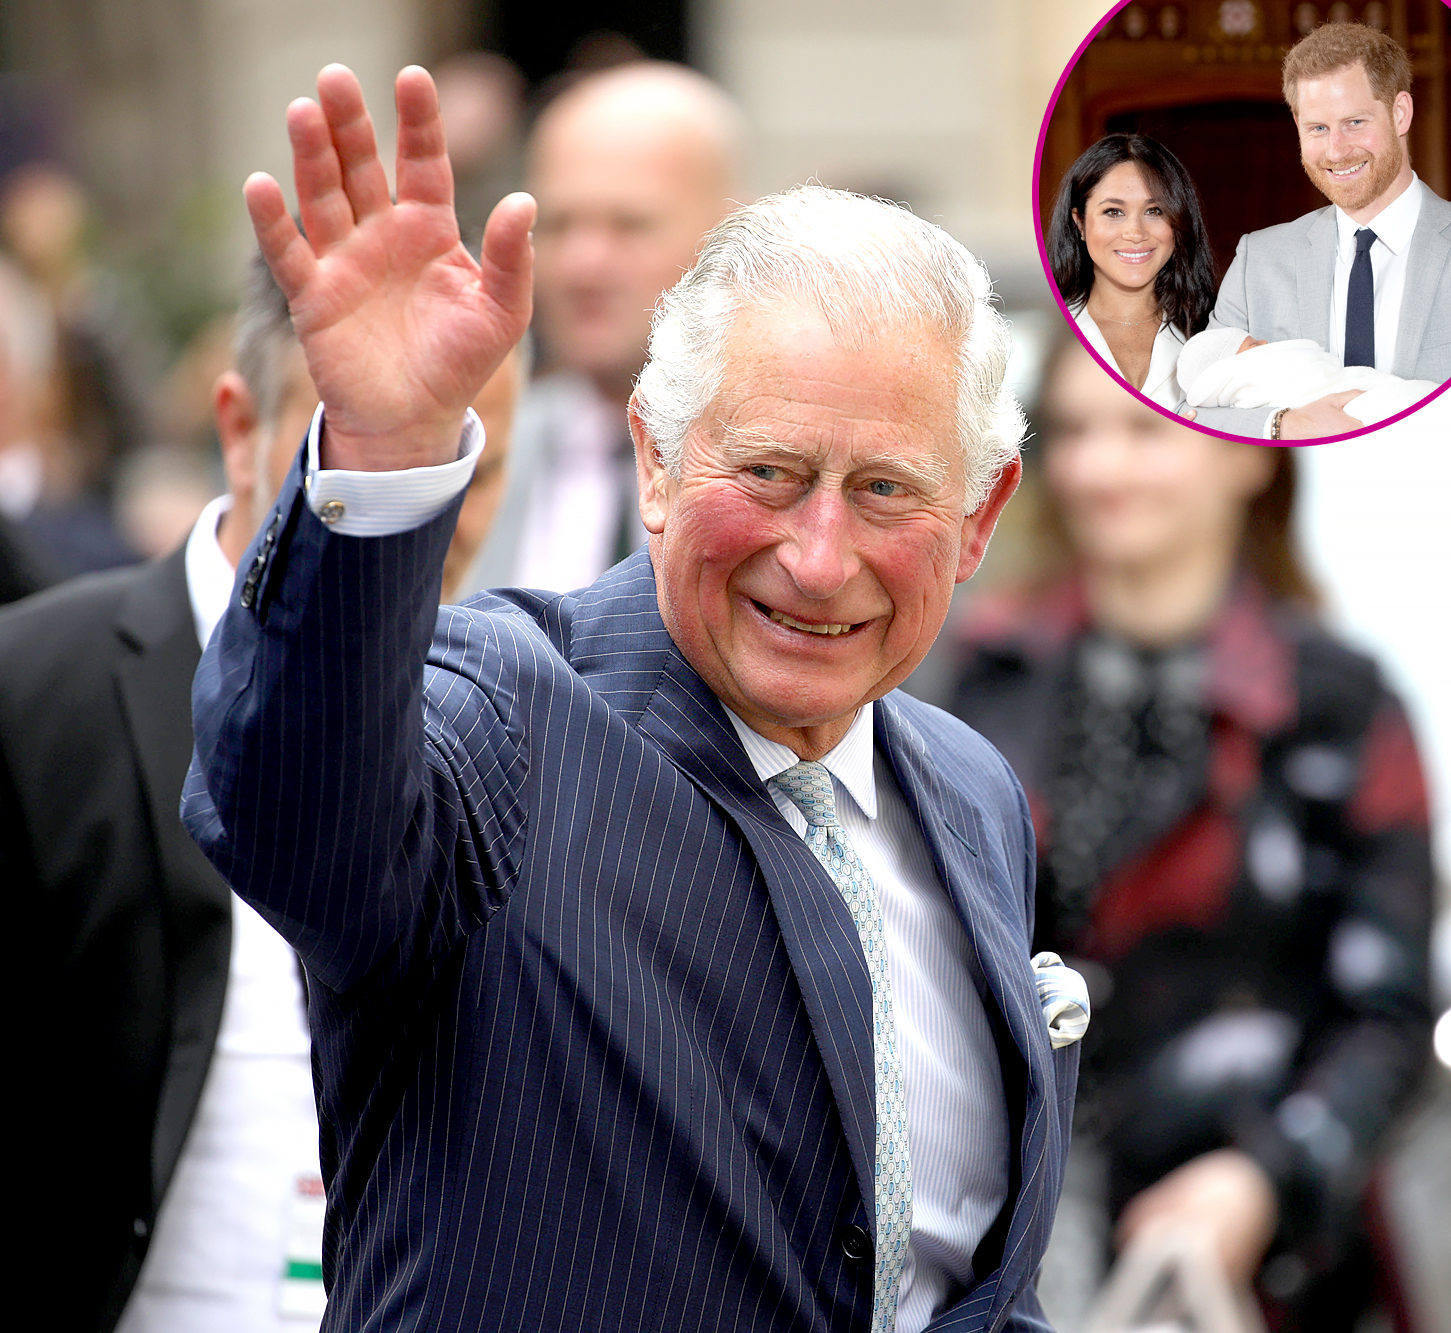 Prince-Charles-meets-Archie-Meghan-Harry